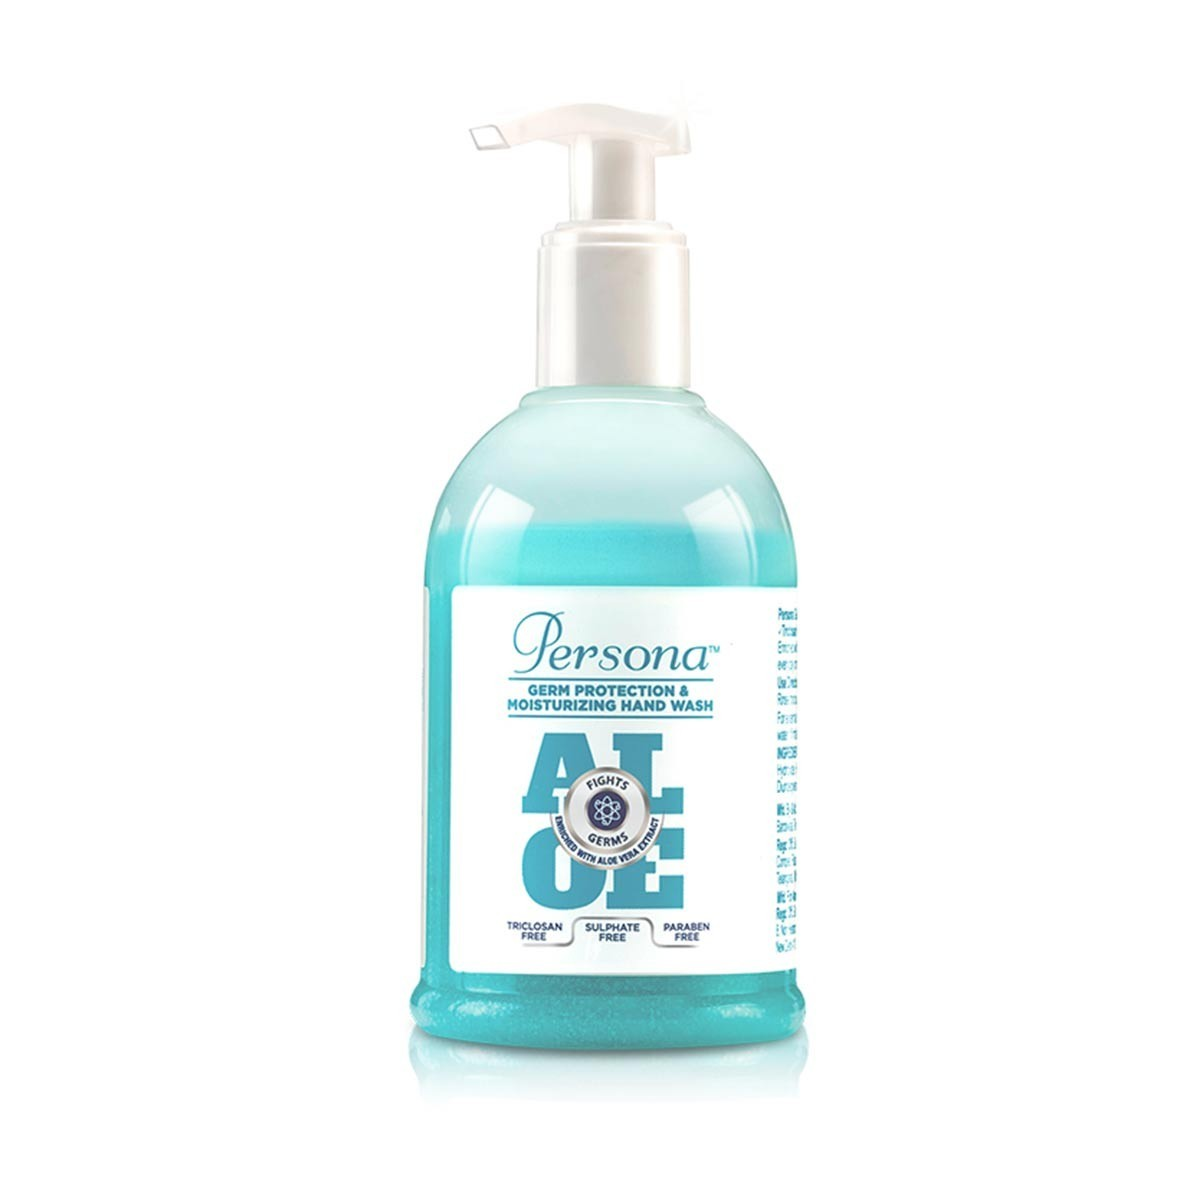 Amway Persona Germ Protection and Moisturizing Hand Wash